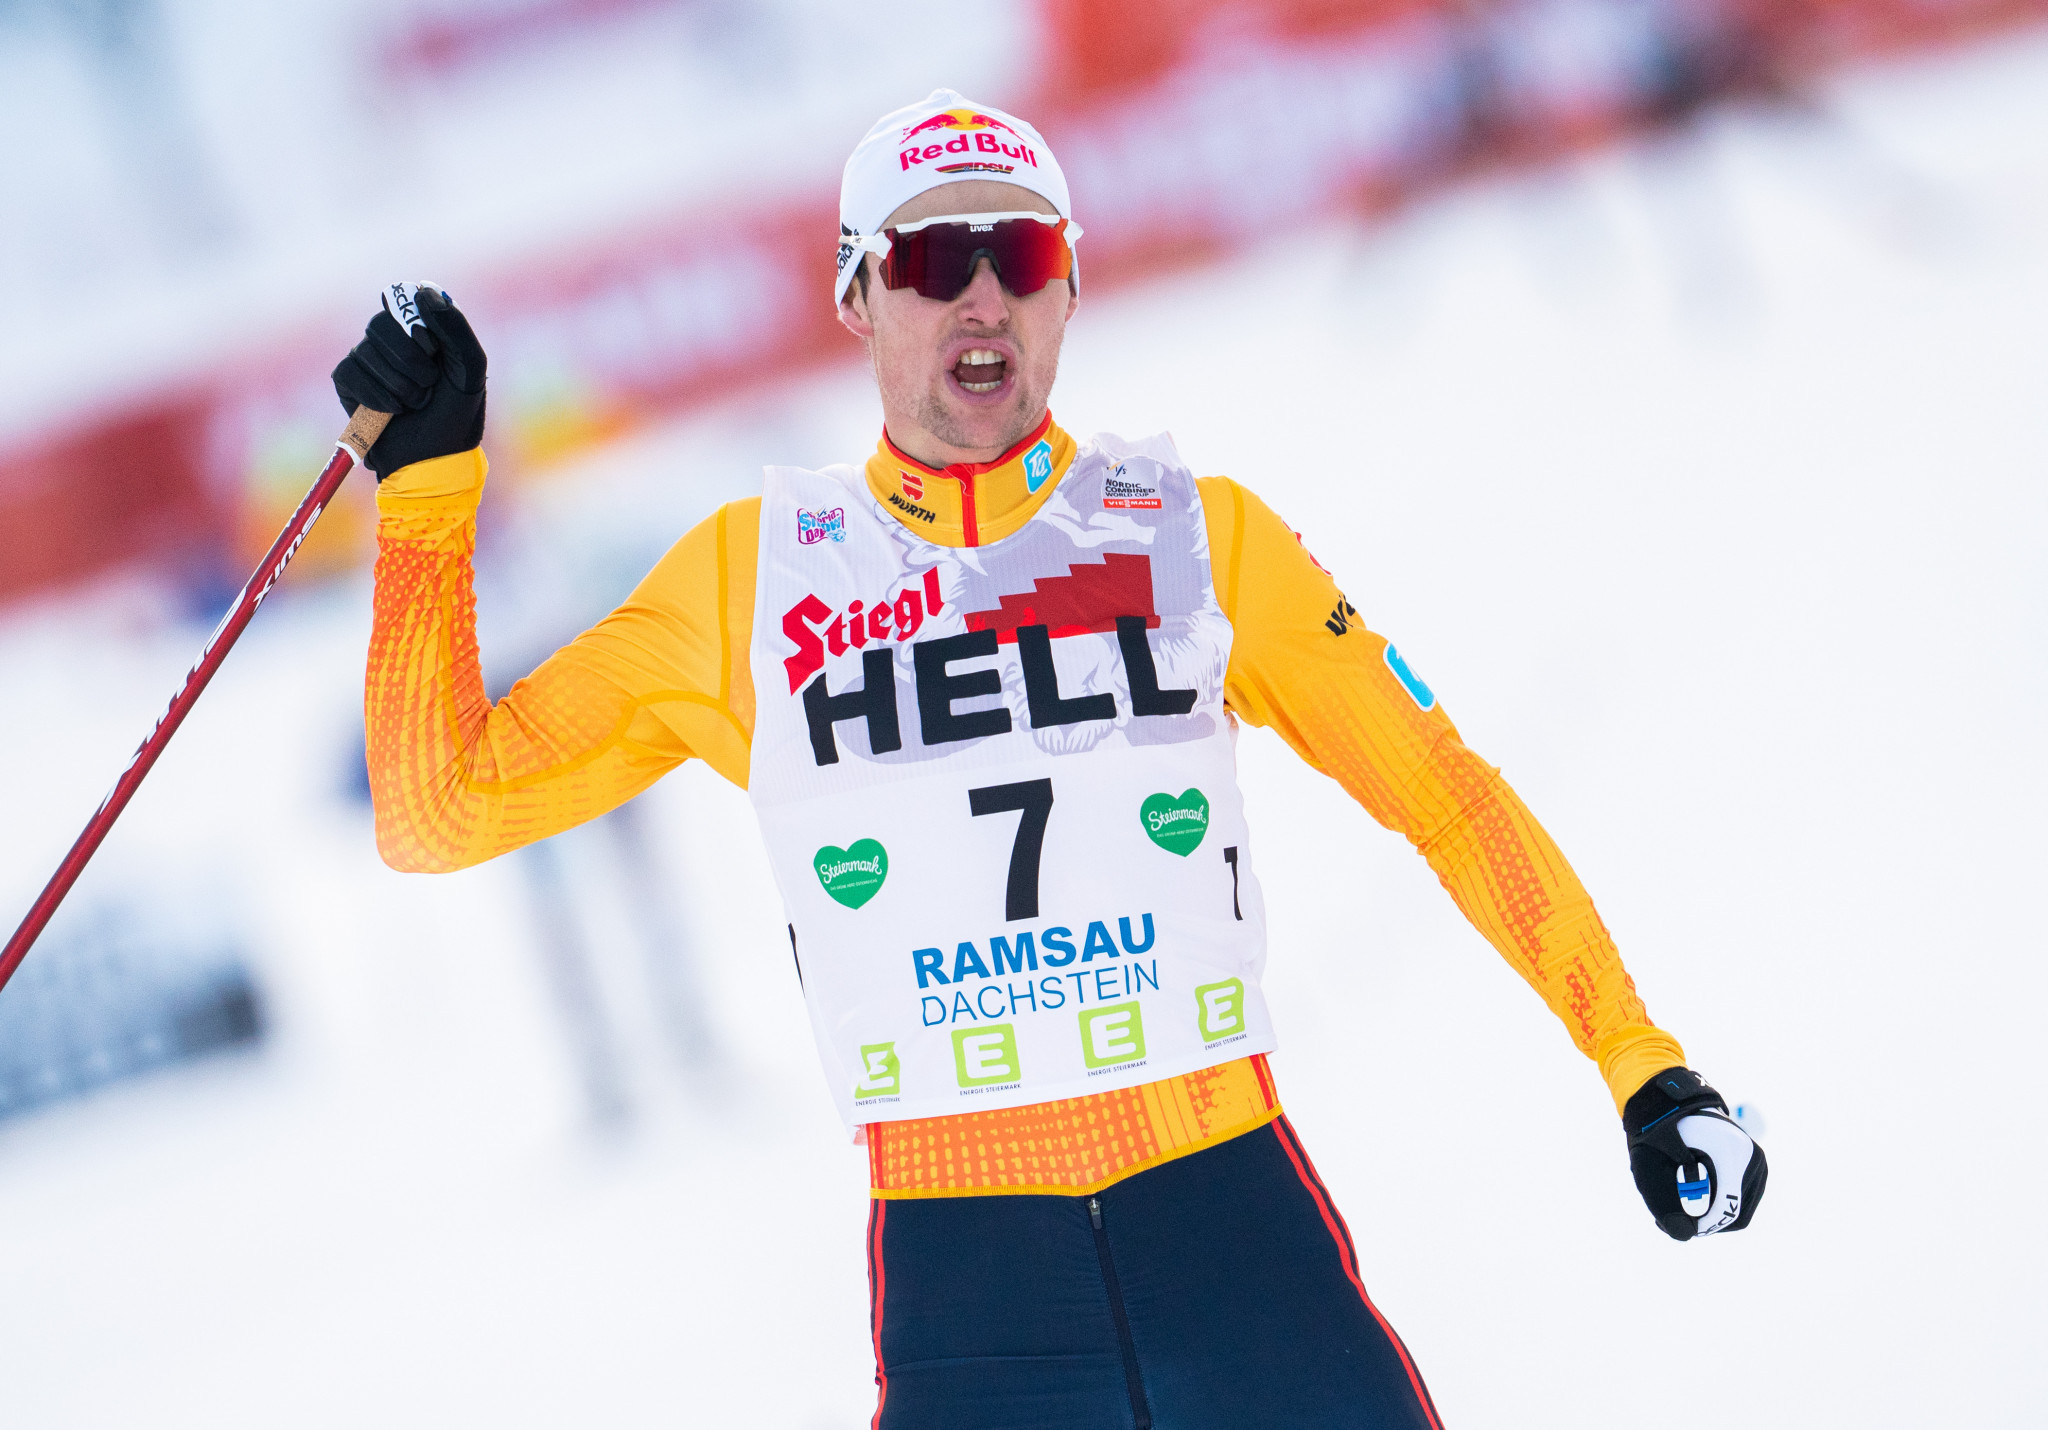 Geiger claims second successive victory at FIS Nordic Combined World Cup in Ramsau